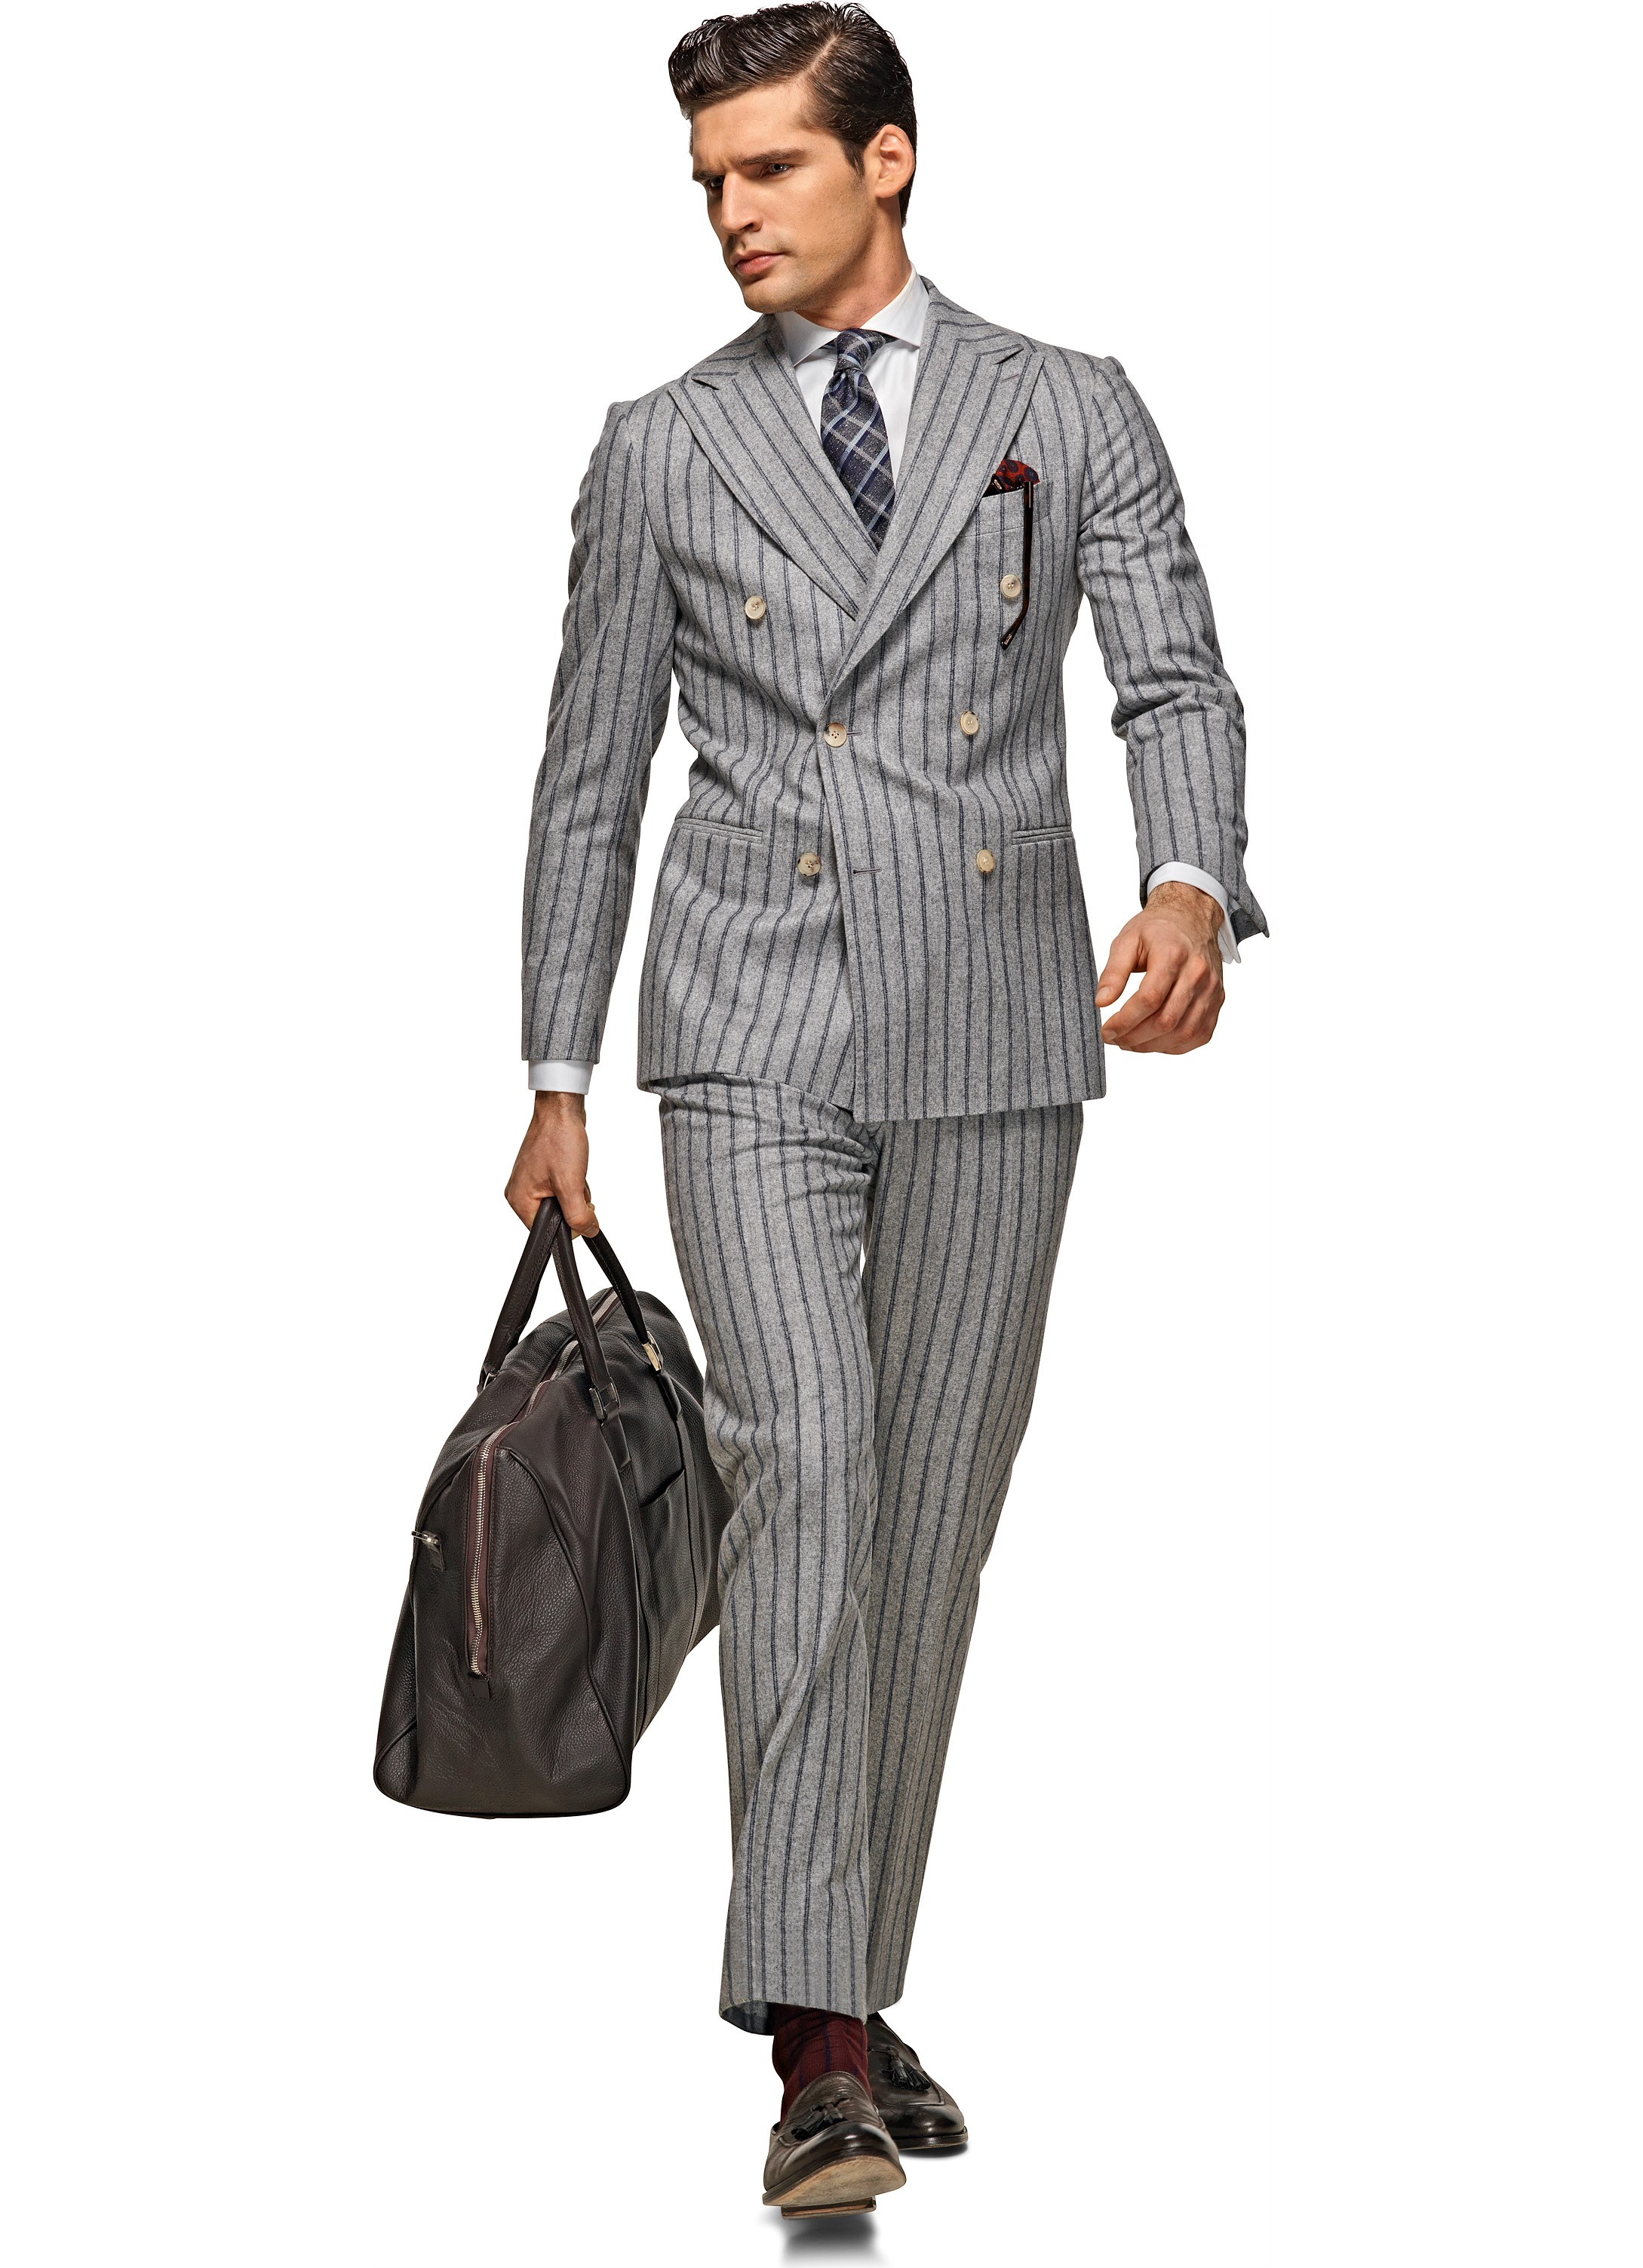 85d2df5f447a http   statics.suitsupply.com images products Suits zoom Suits Grey Stripe Lazio P3743 Suitsupply Online Store 1.jpg